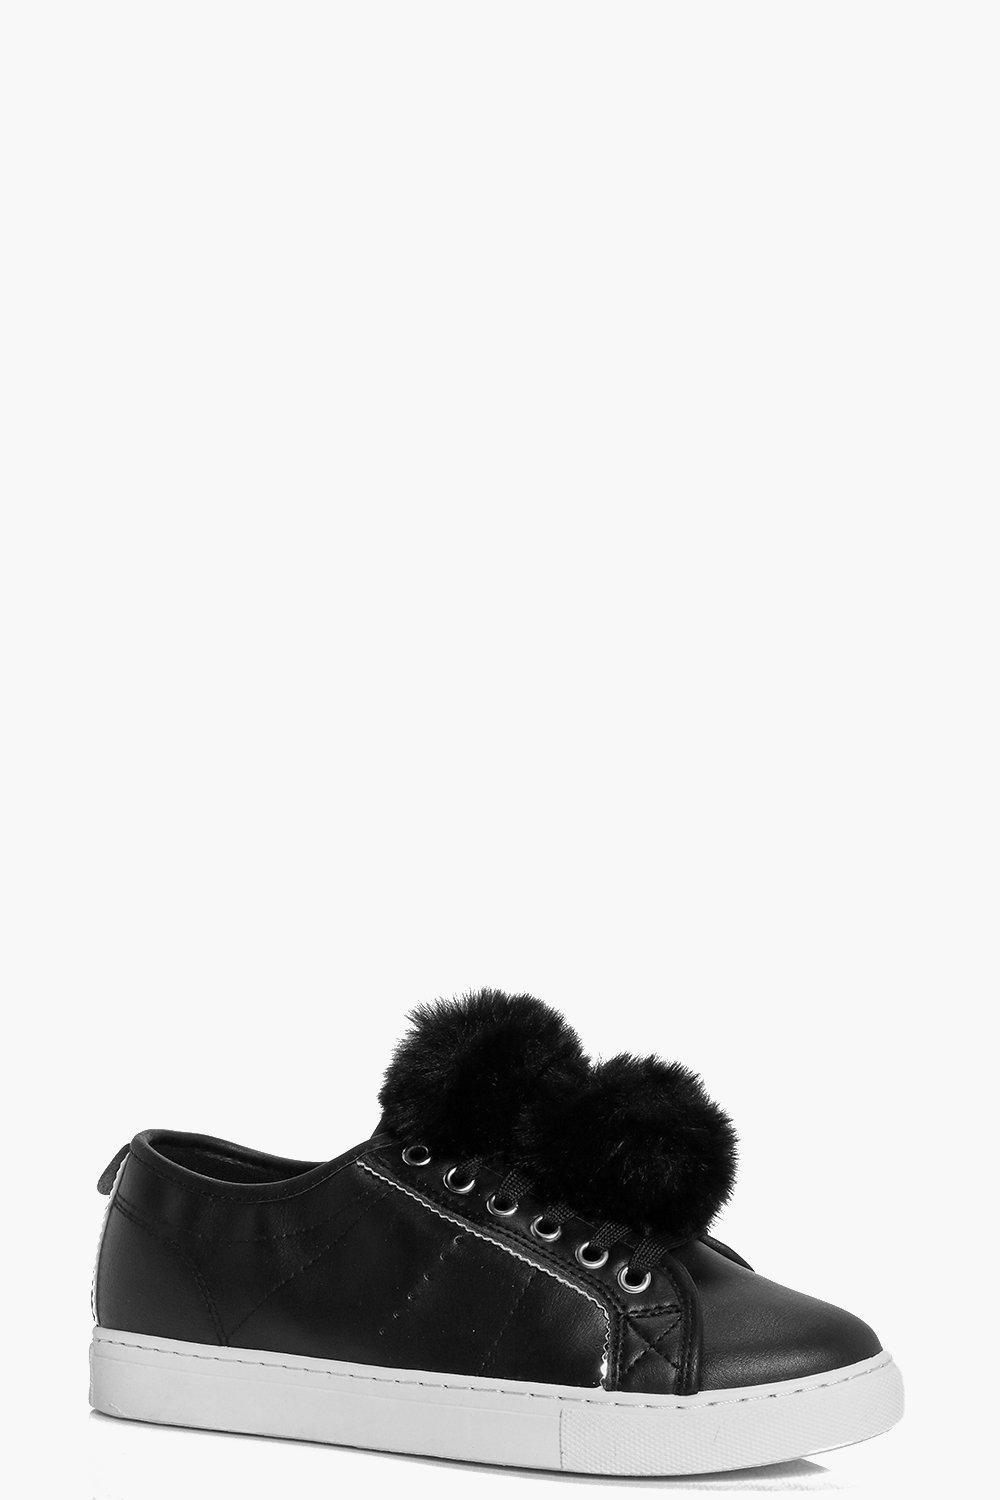 Pom Pom Trim Lace Up Trainer Black - predominant colour: black; occasions: casual; material: fabric; heel height: flat; toe: round toe; style: trainers; finish: plain; pattern: plain; wardrobe: basic; season: a/w 2016